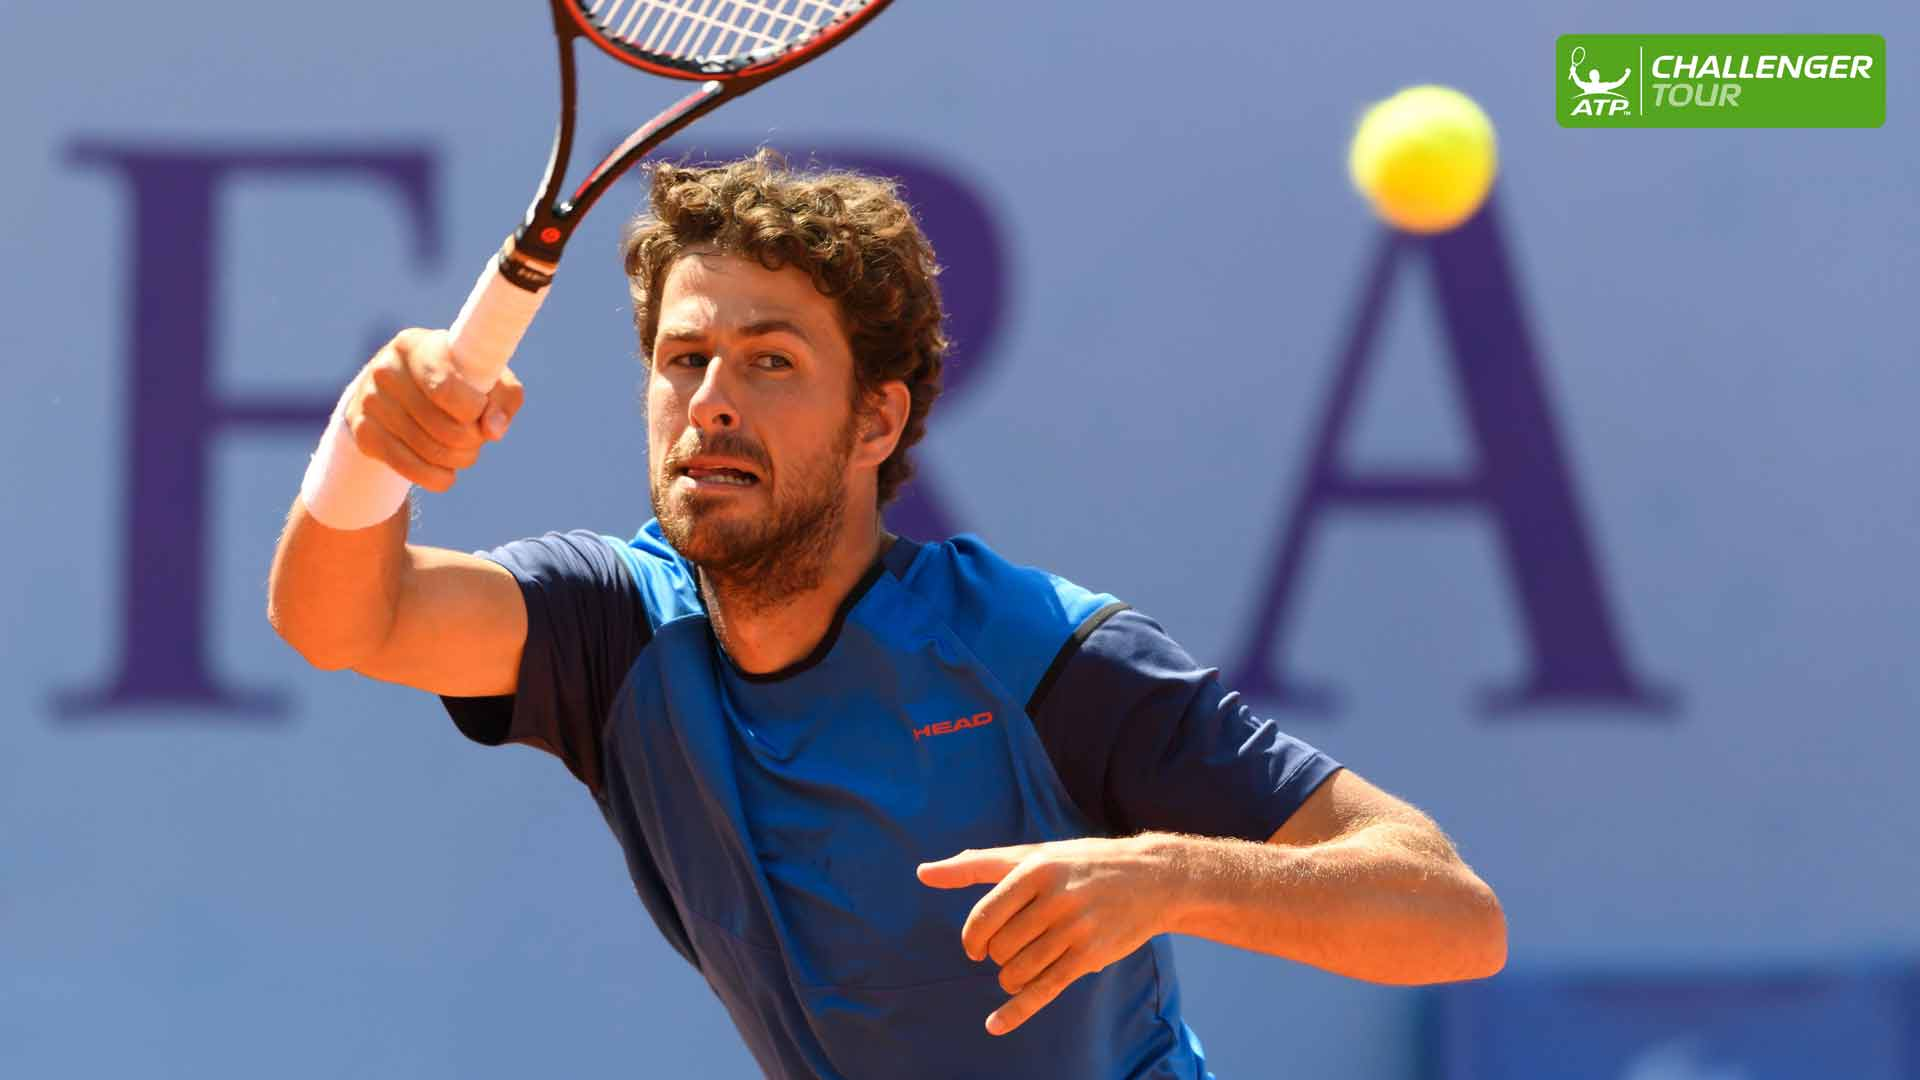 Robin Haase has another successful week on the ATP Challenger Tour in Alphen.